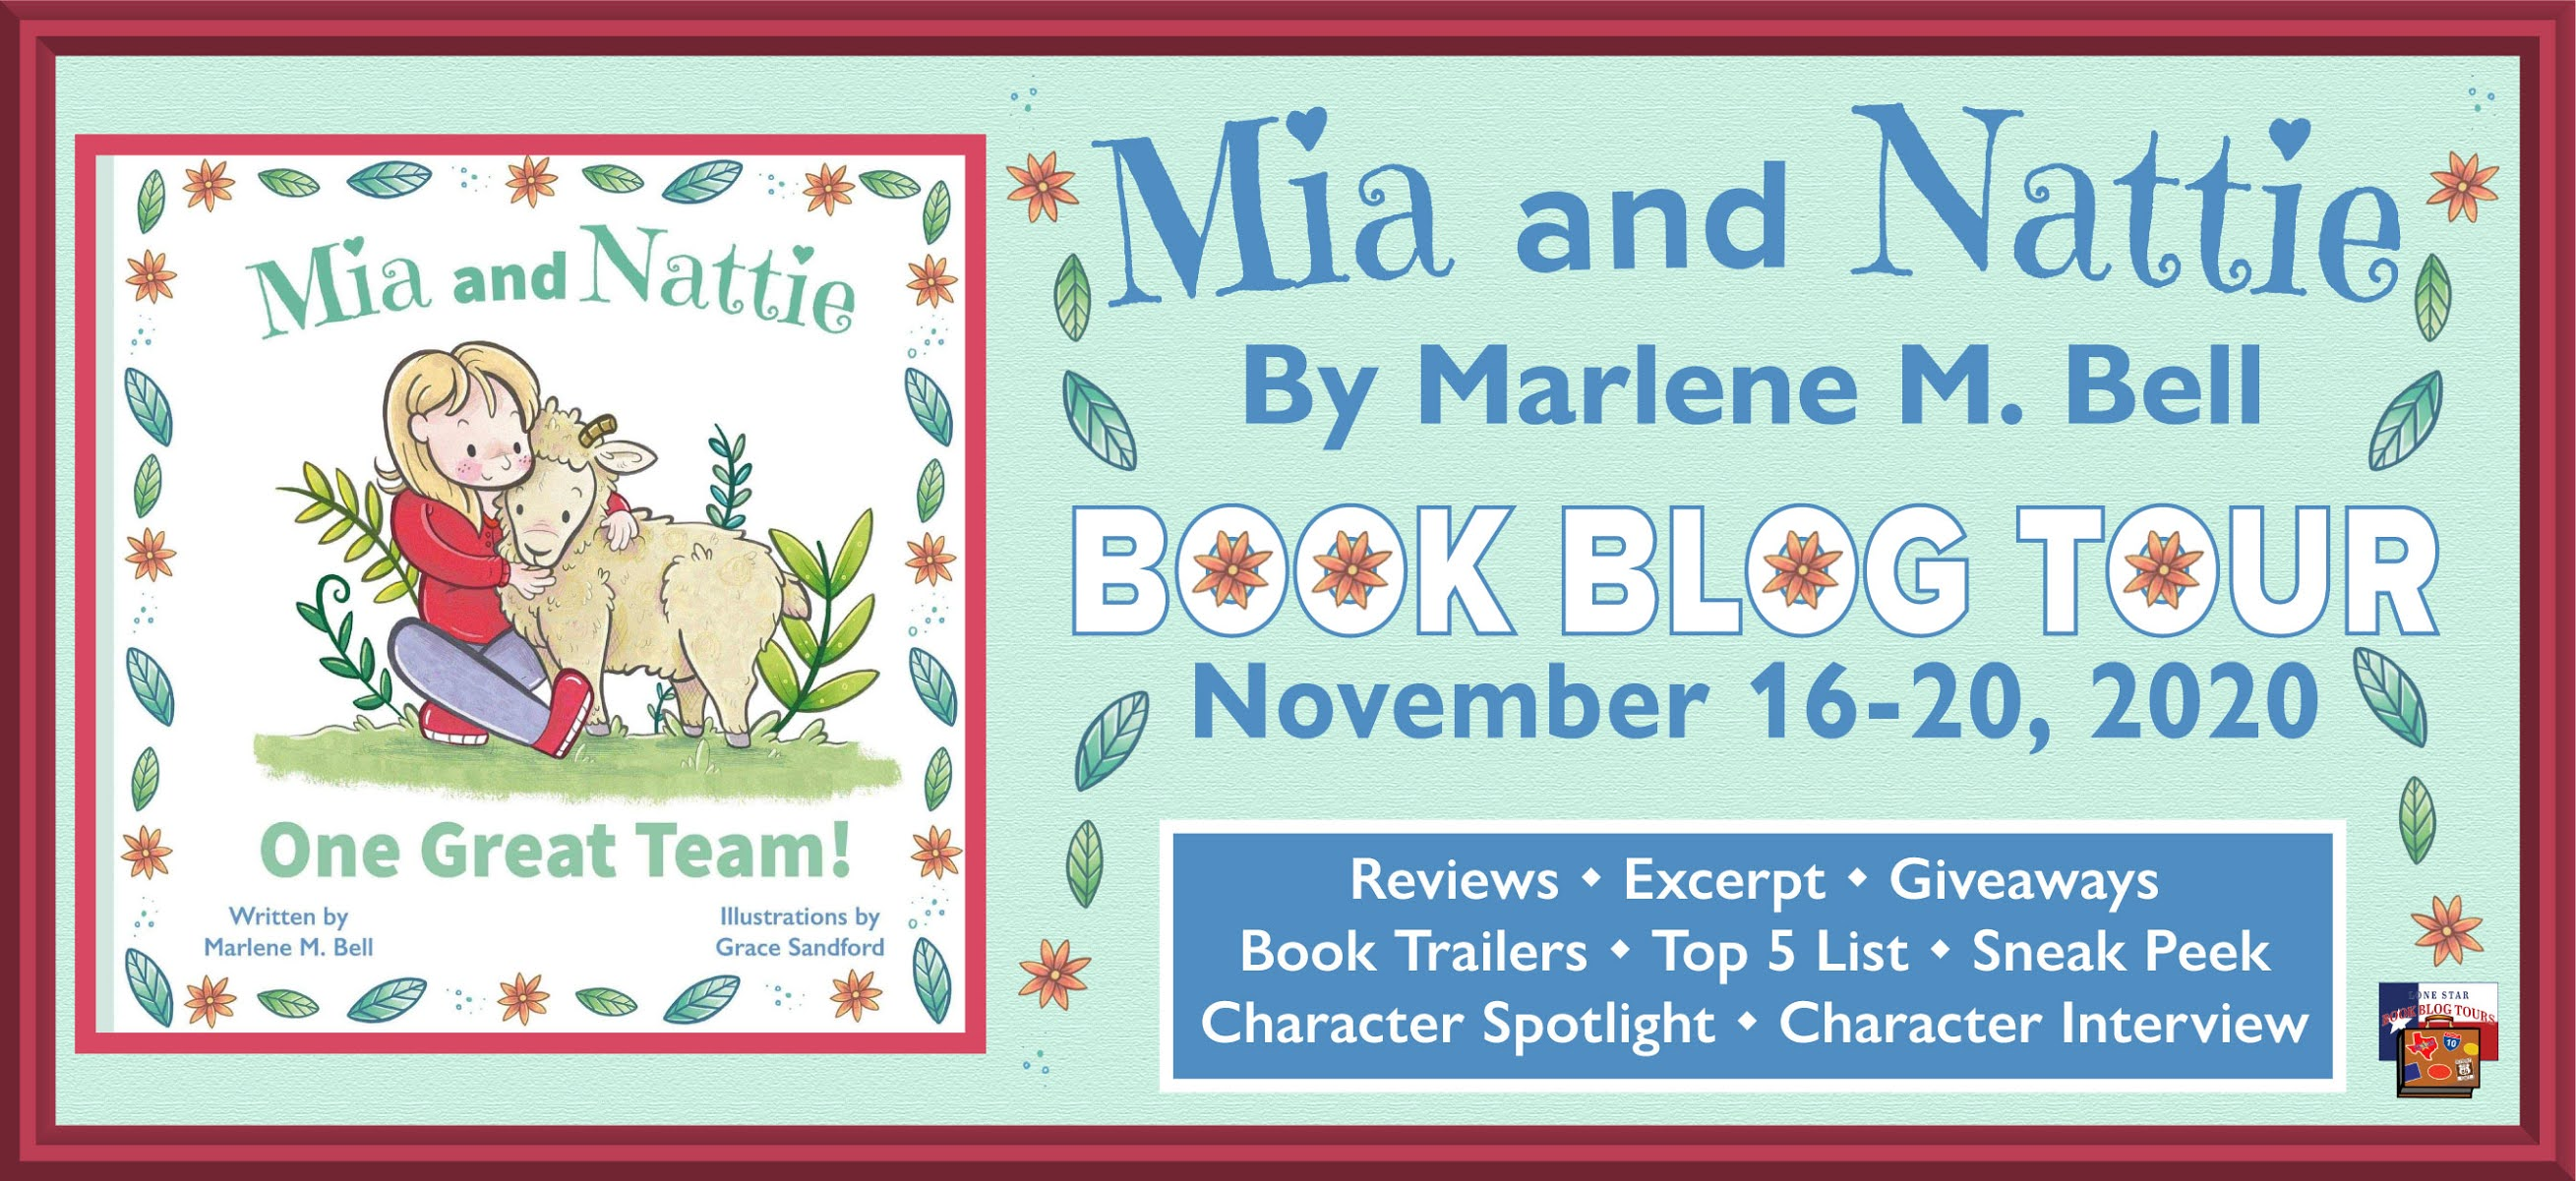 Mia and Nattie book blog tour promotion banner